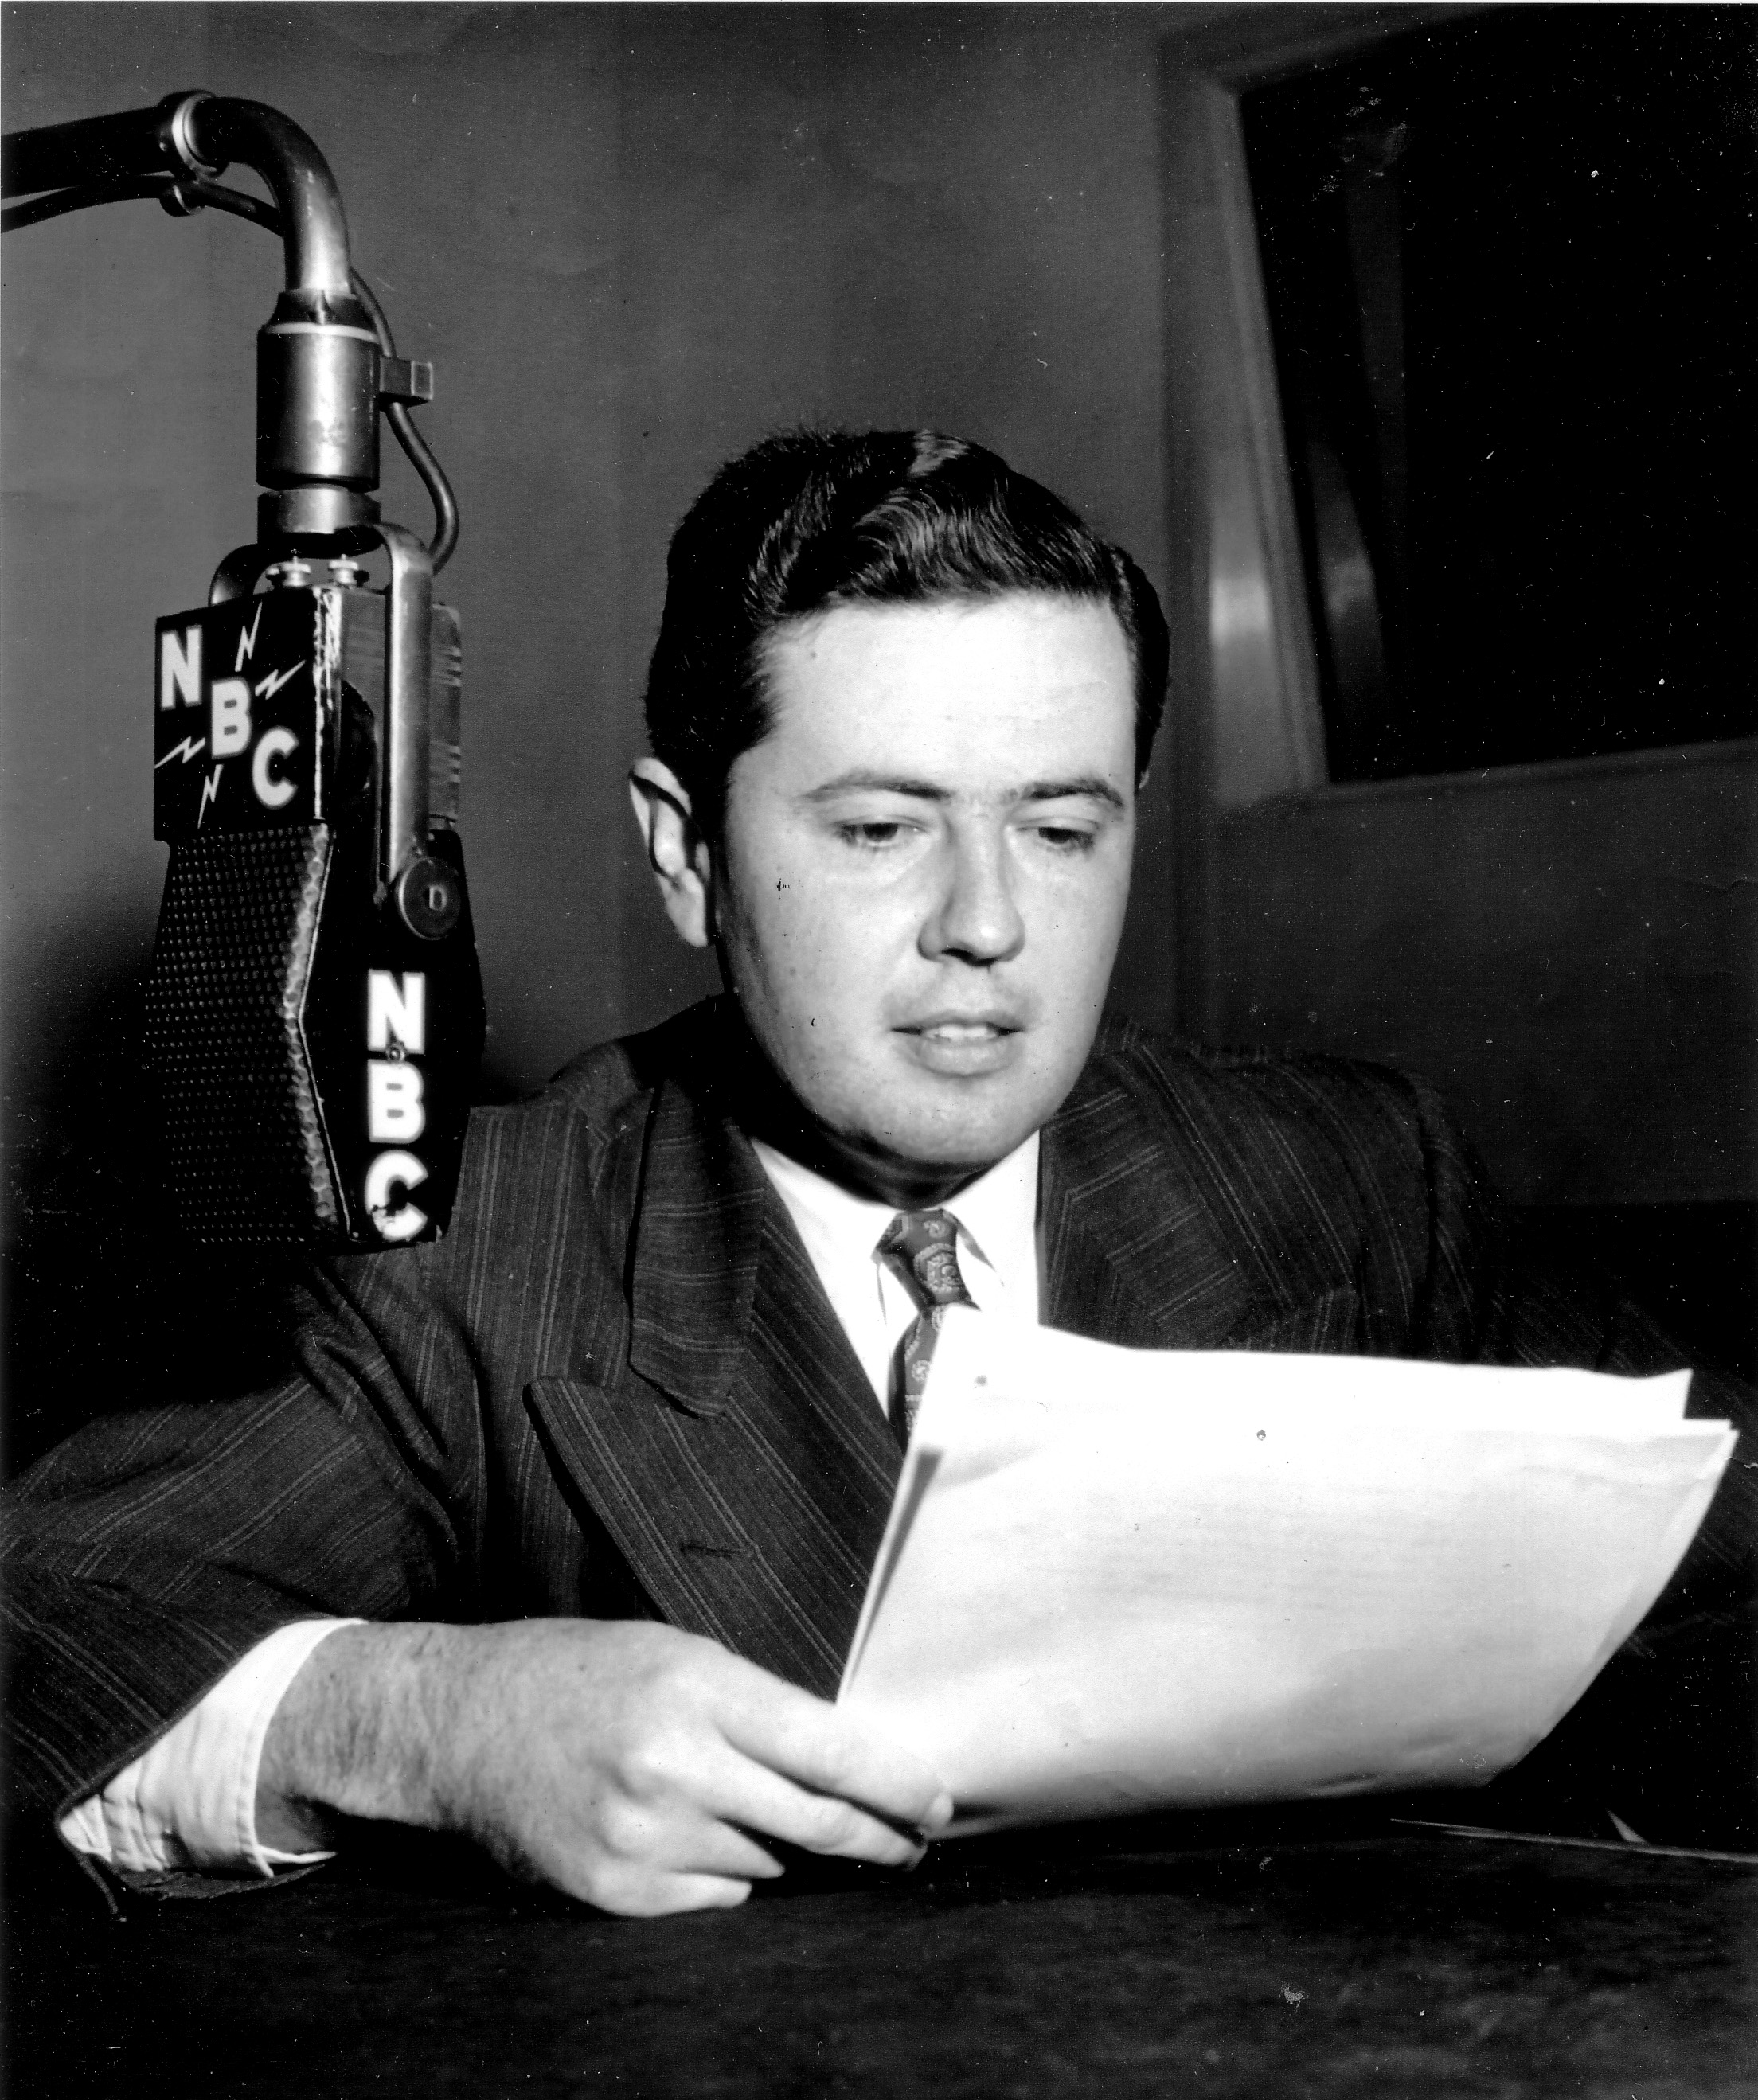 Thought you might like using one of these photos of my father, Don Stanley, who was the announcer on several of the OTR shows.